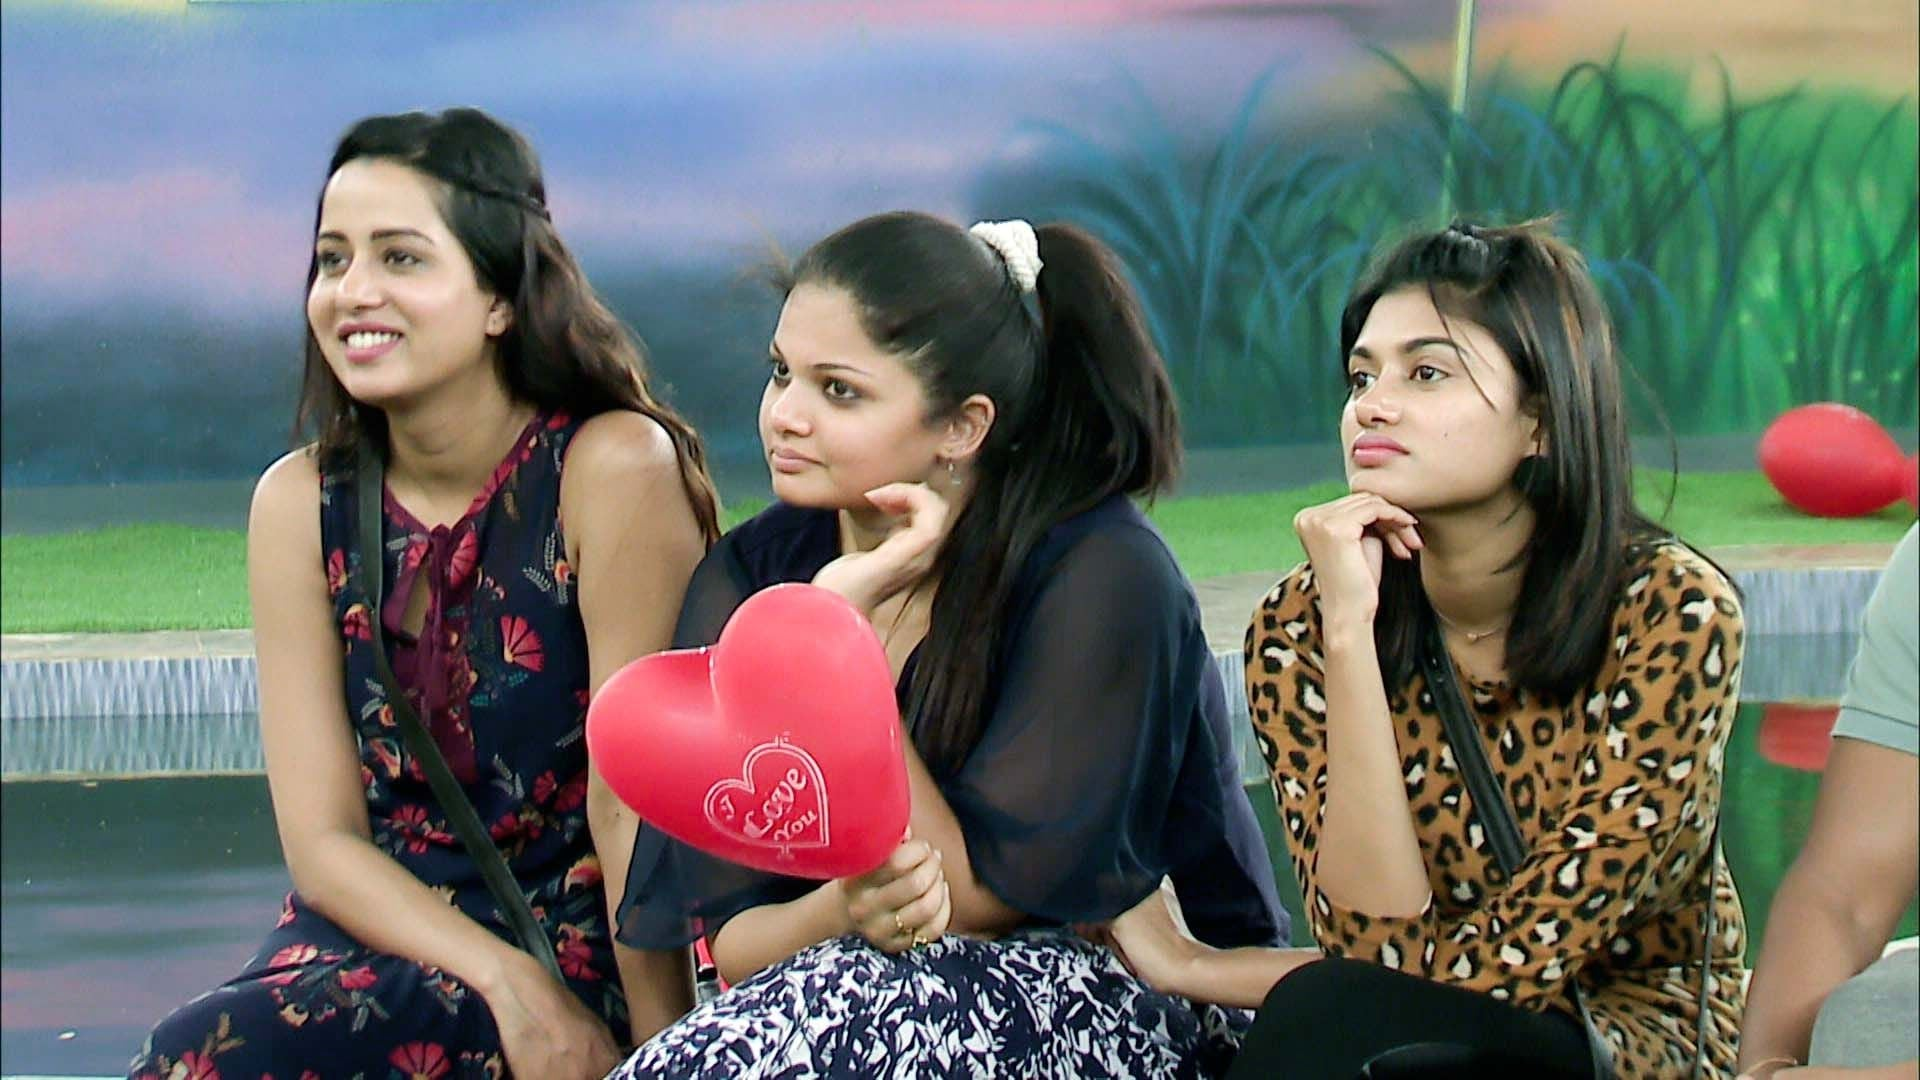 Bigg Boss Season 1 :Episode 4  Day 3: The Magic Of First Love